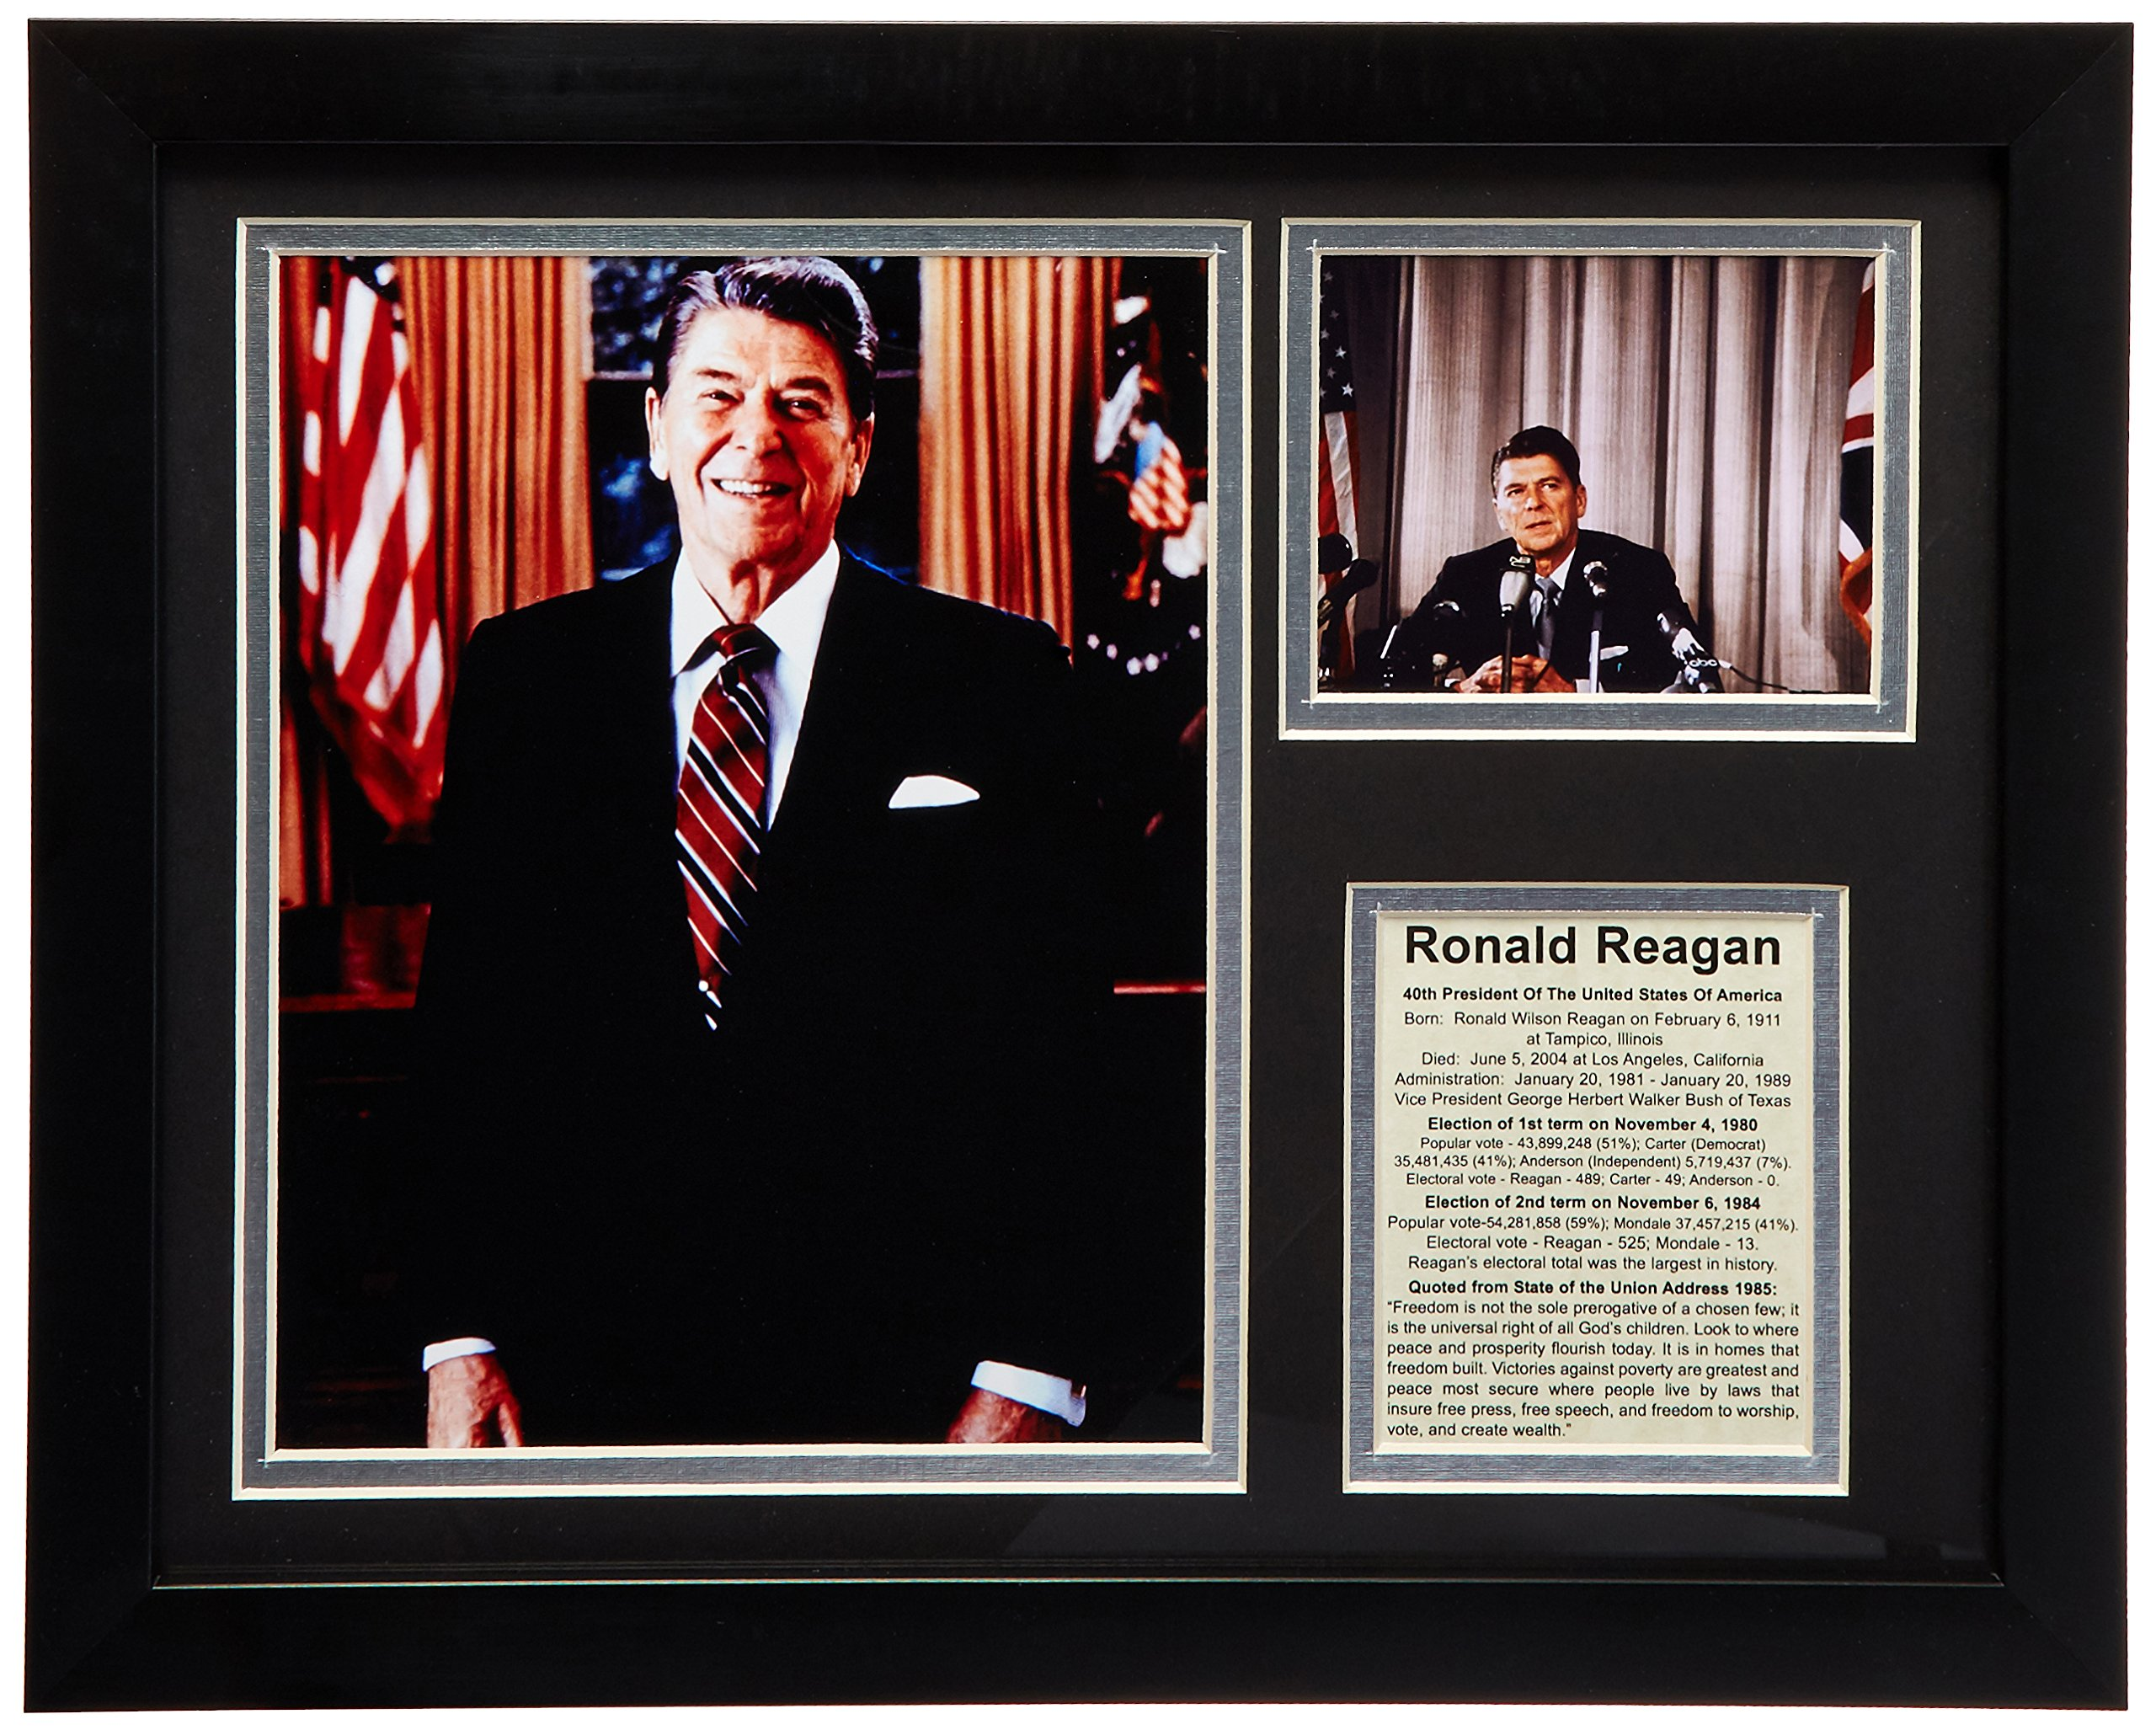 Legends Never Die Ronald Reagan Framed Photo Collage, 11x14-Inch by Legends Never Die